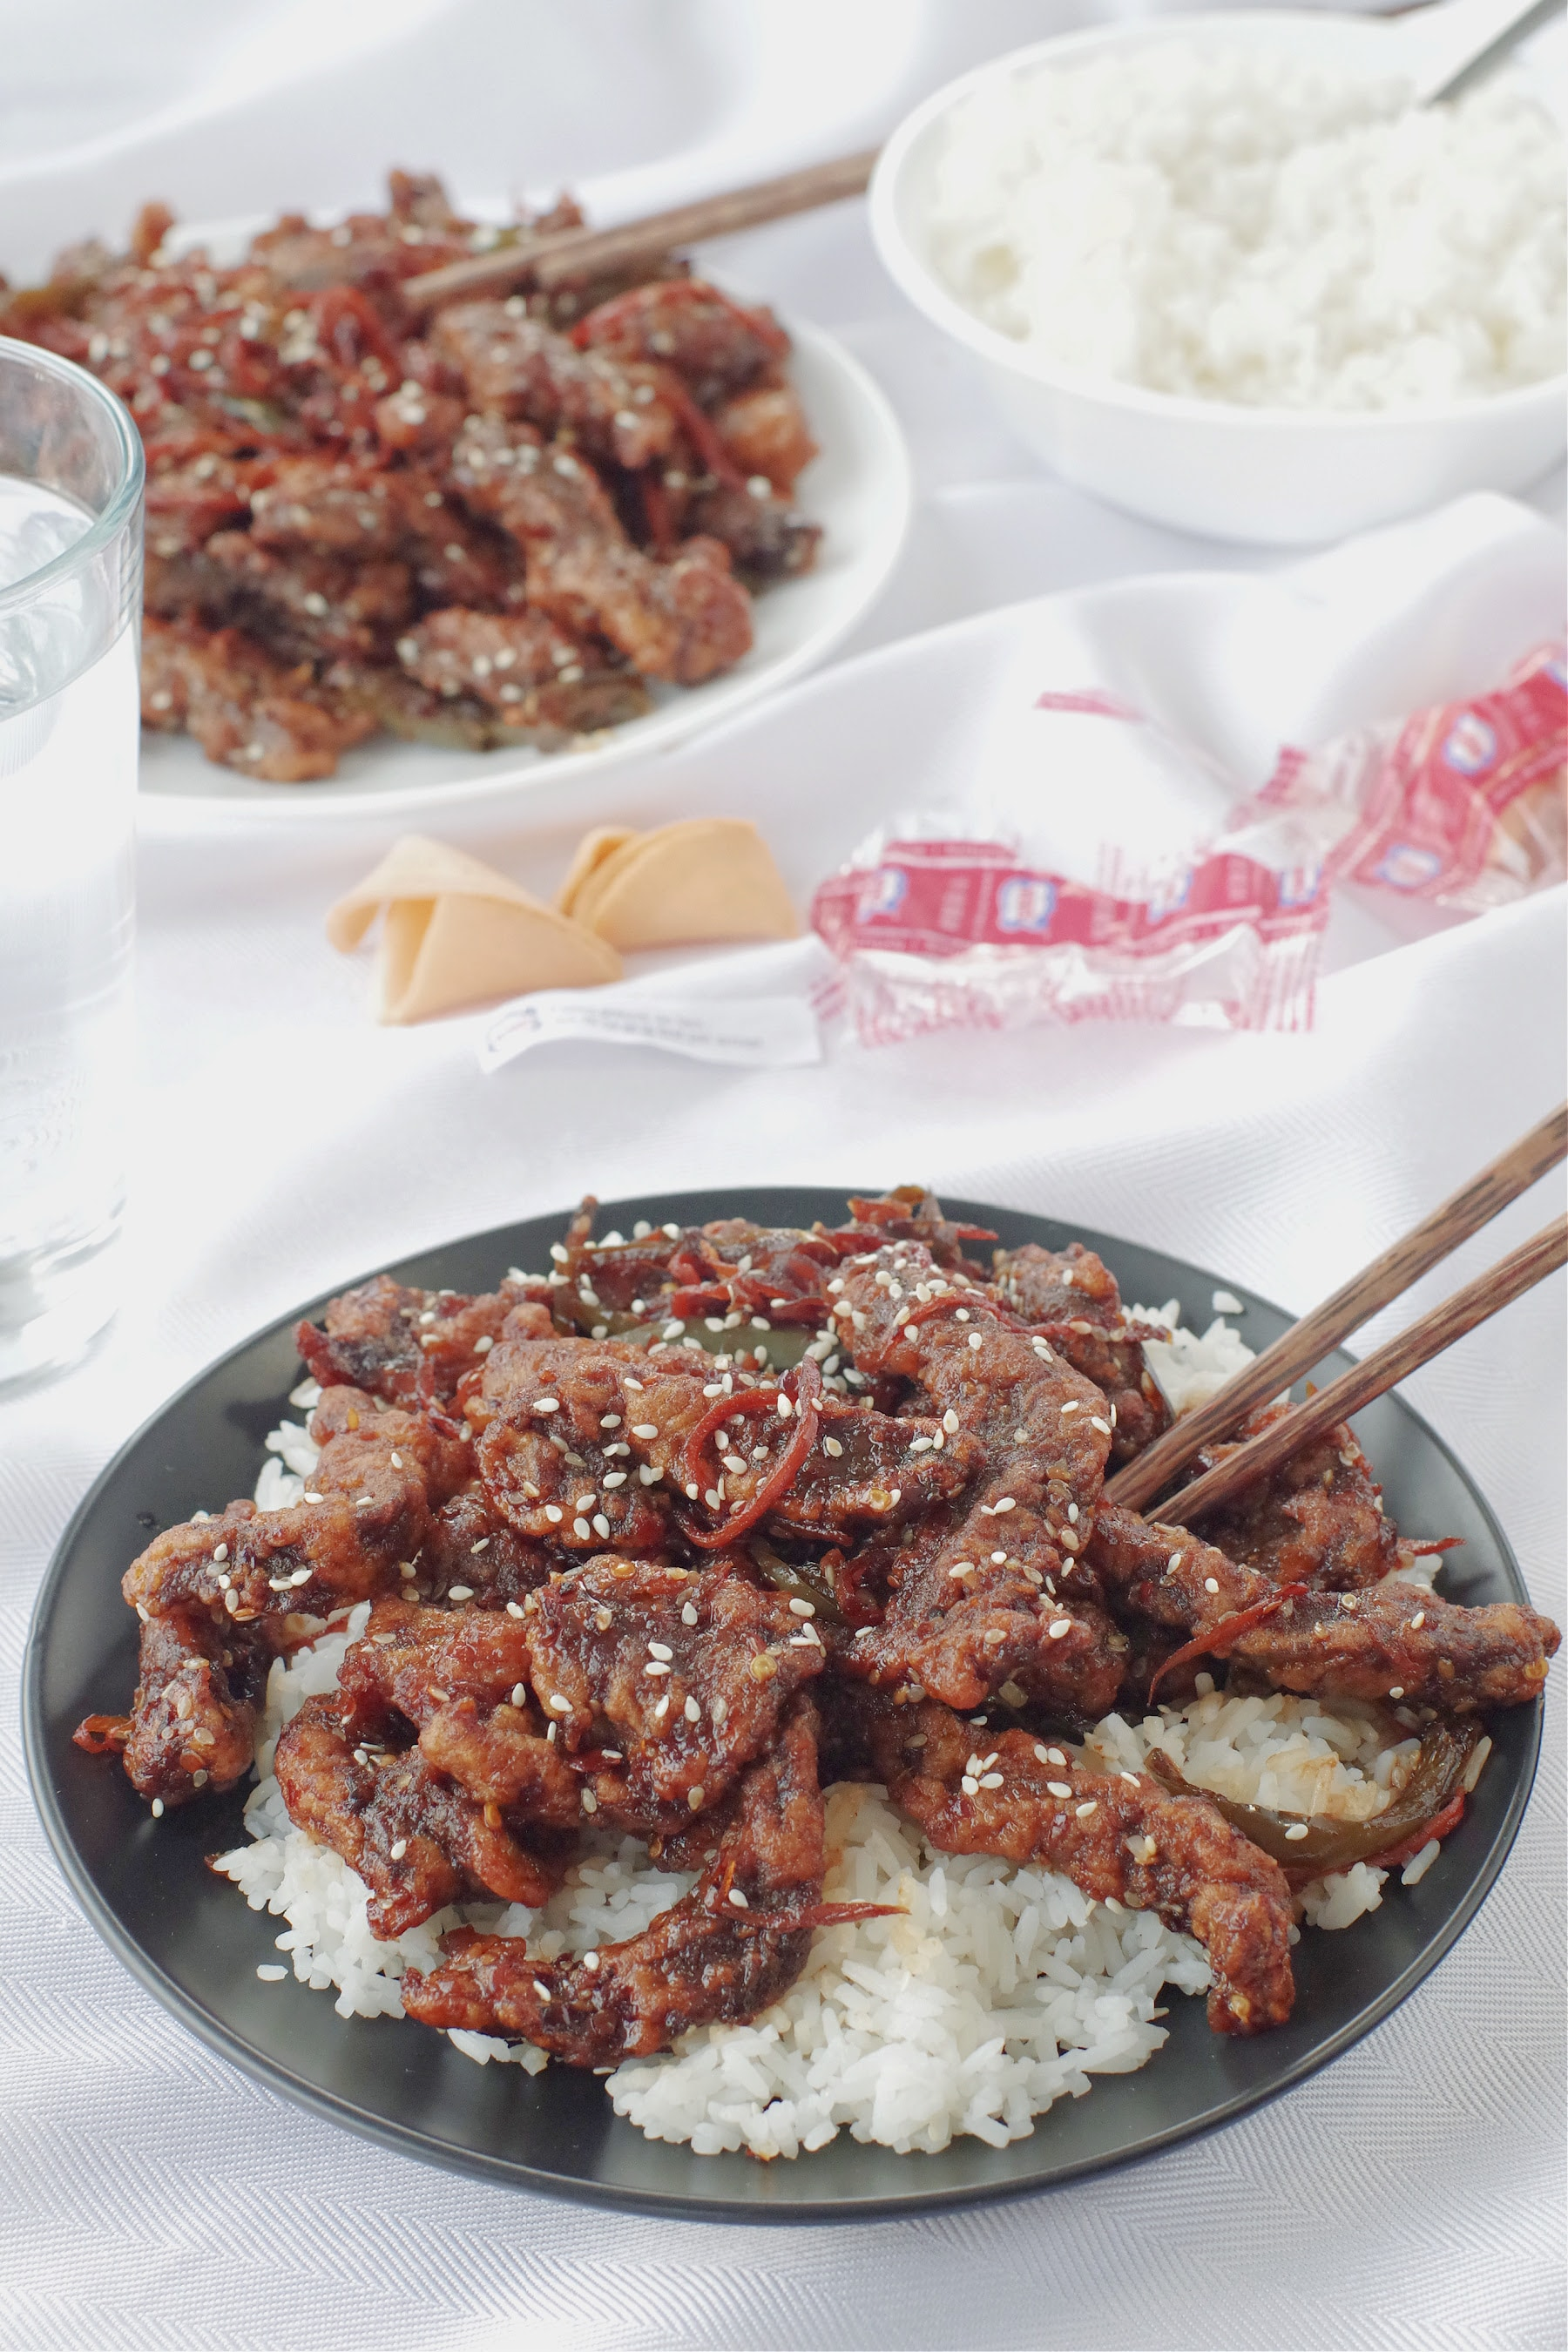 ginger beef over rice on black plate, with chopsticks on a white tablecloth, with a dish of ginger beef and rice in the background, as well as fortune cookies